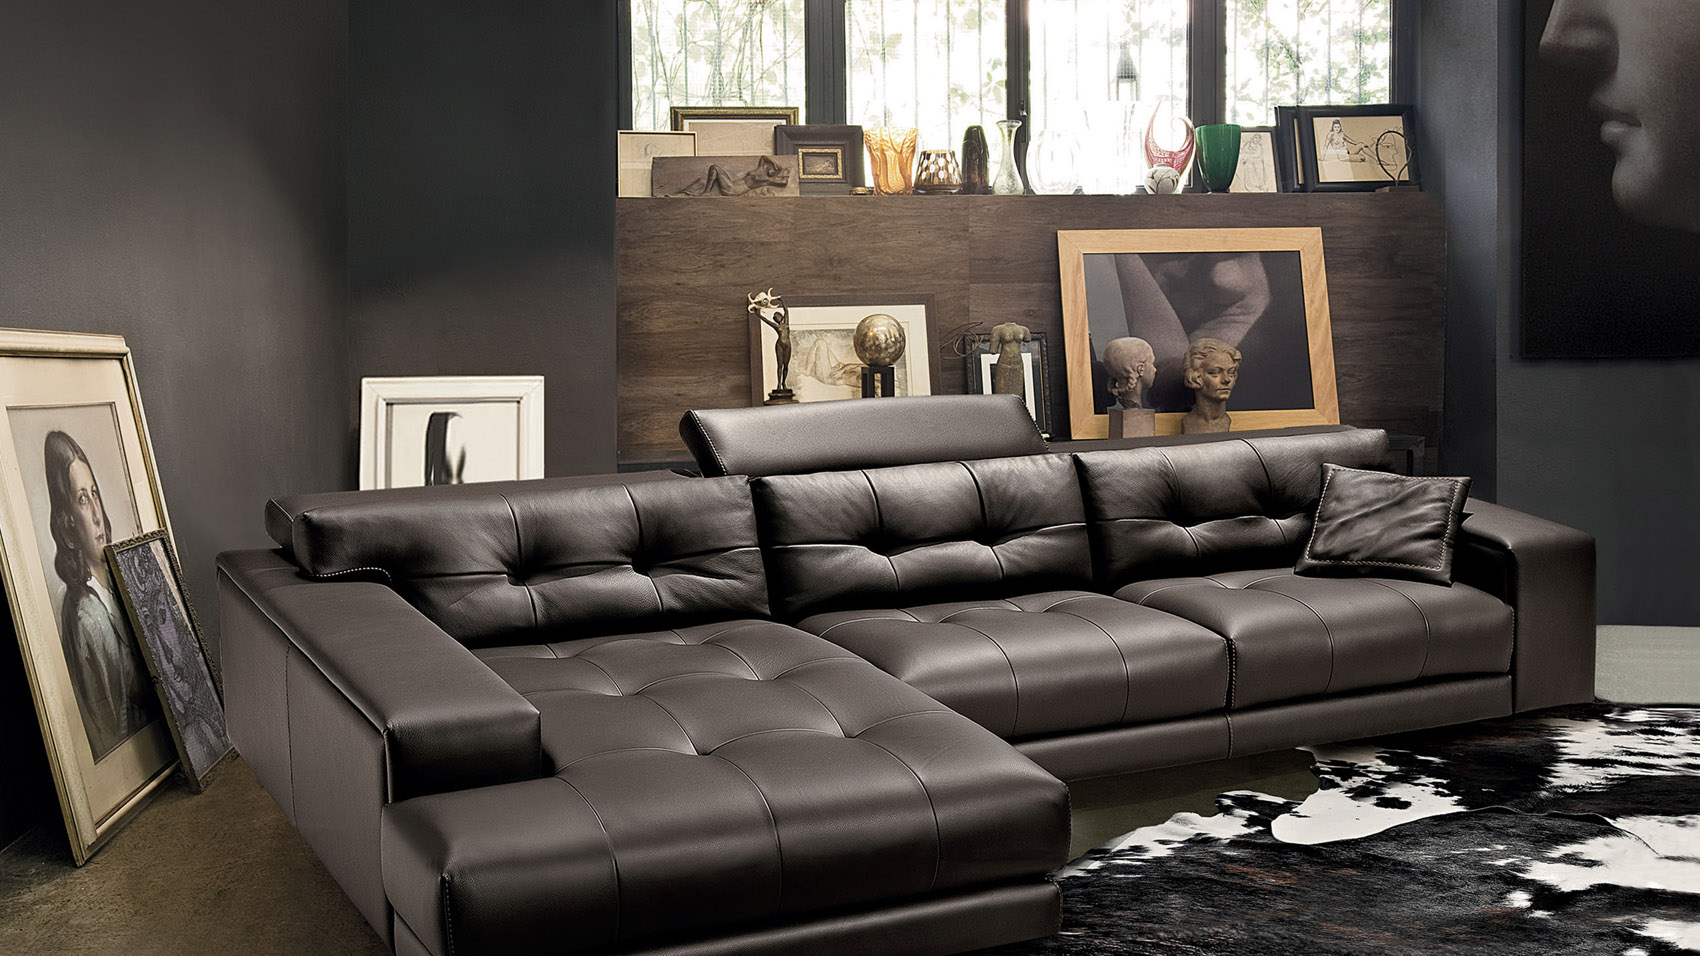 A Dark Brown Leather Couch In A Dark Room Gives A Rich, High Style Feel